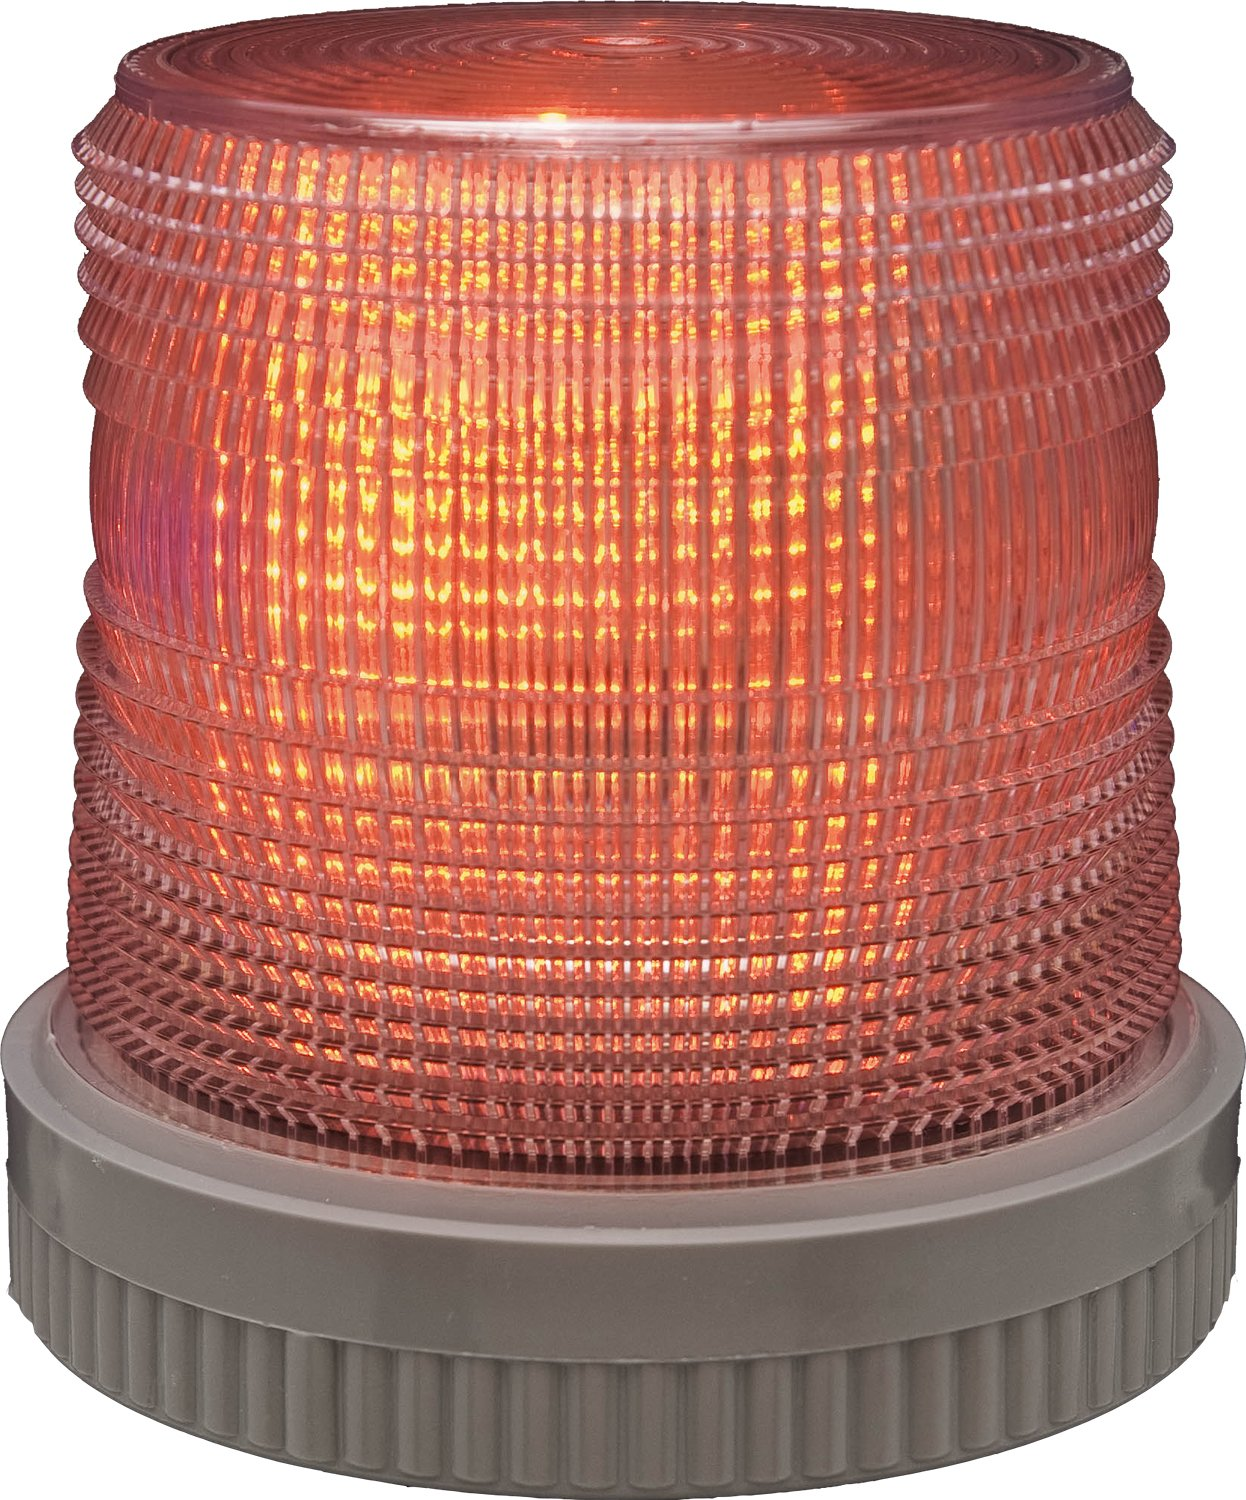 Edwards Signaling 105XBRMR24D XTRA-BRITE LED Multi-Mode Beacon, Heavy Duty, 24V DC, Red by Edwards-Signaling